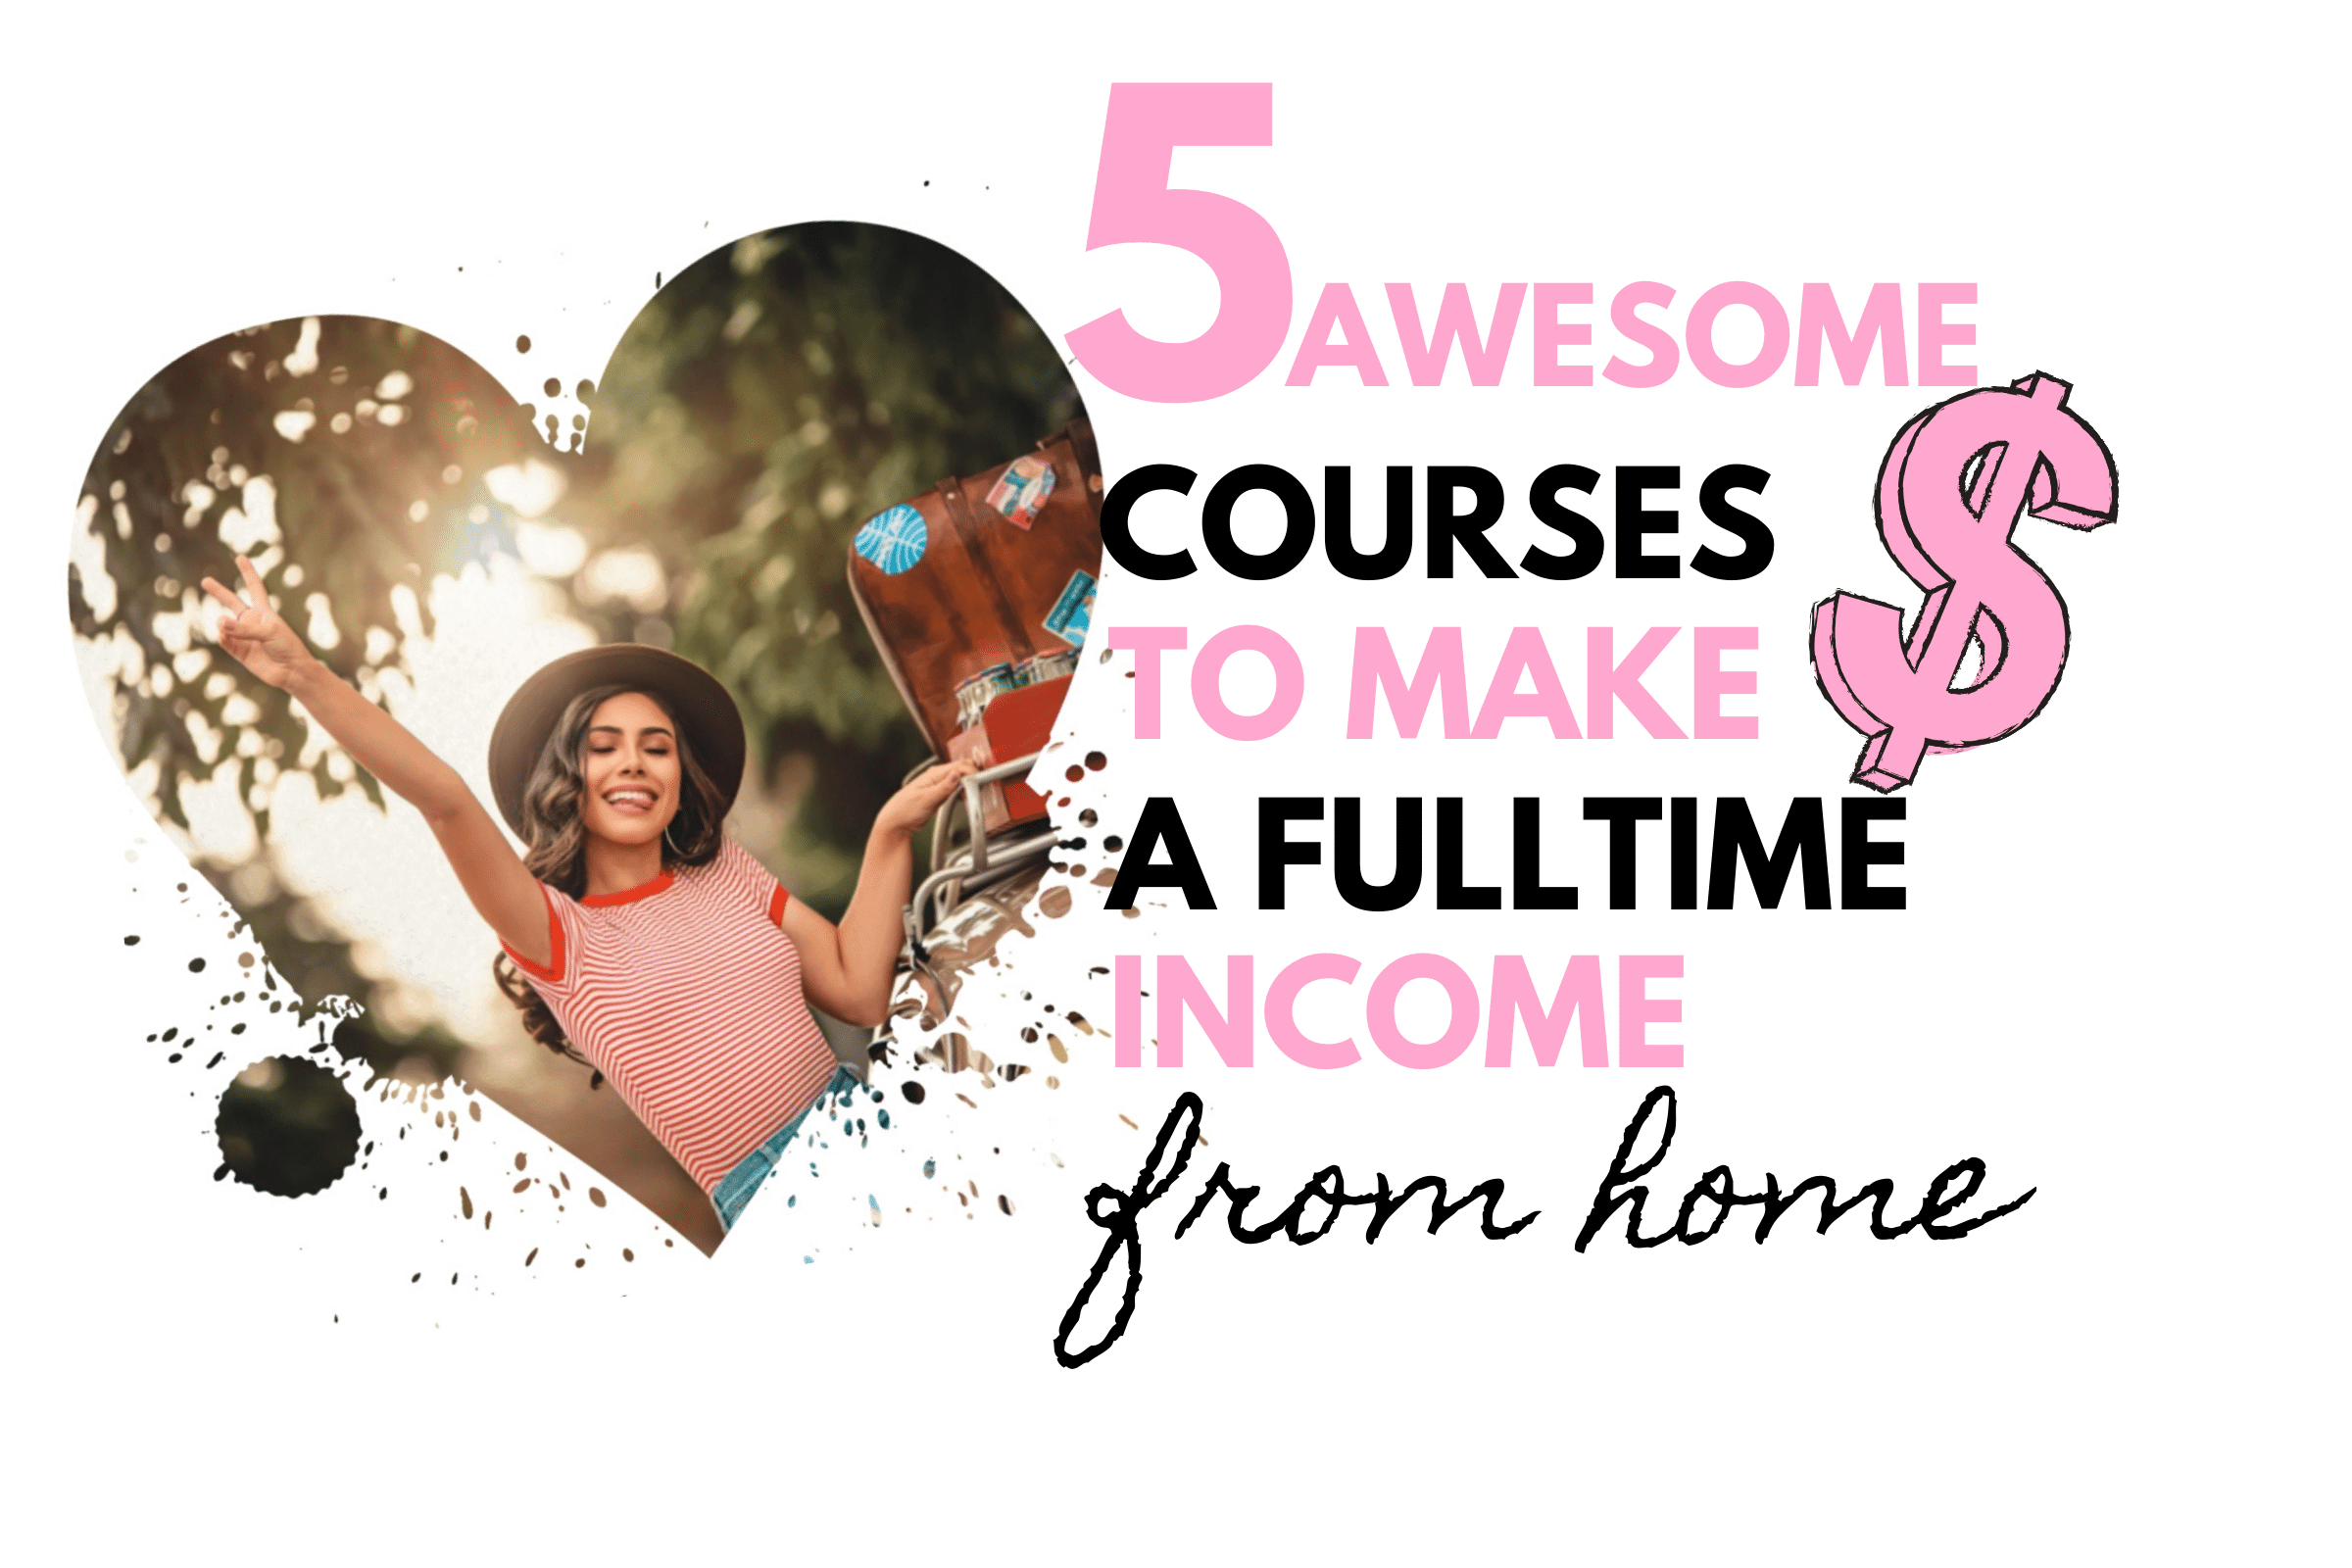 5 awesome courses to make a full time income from home